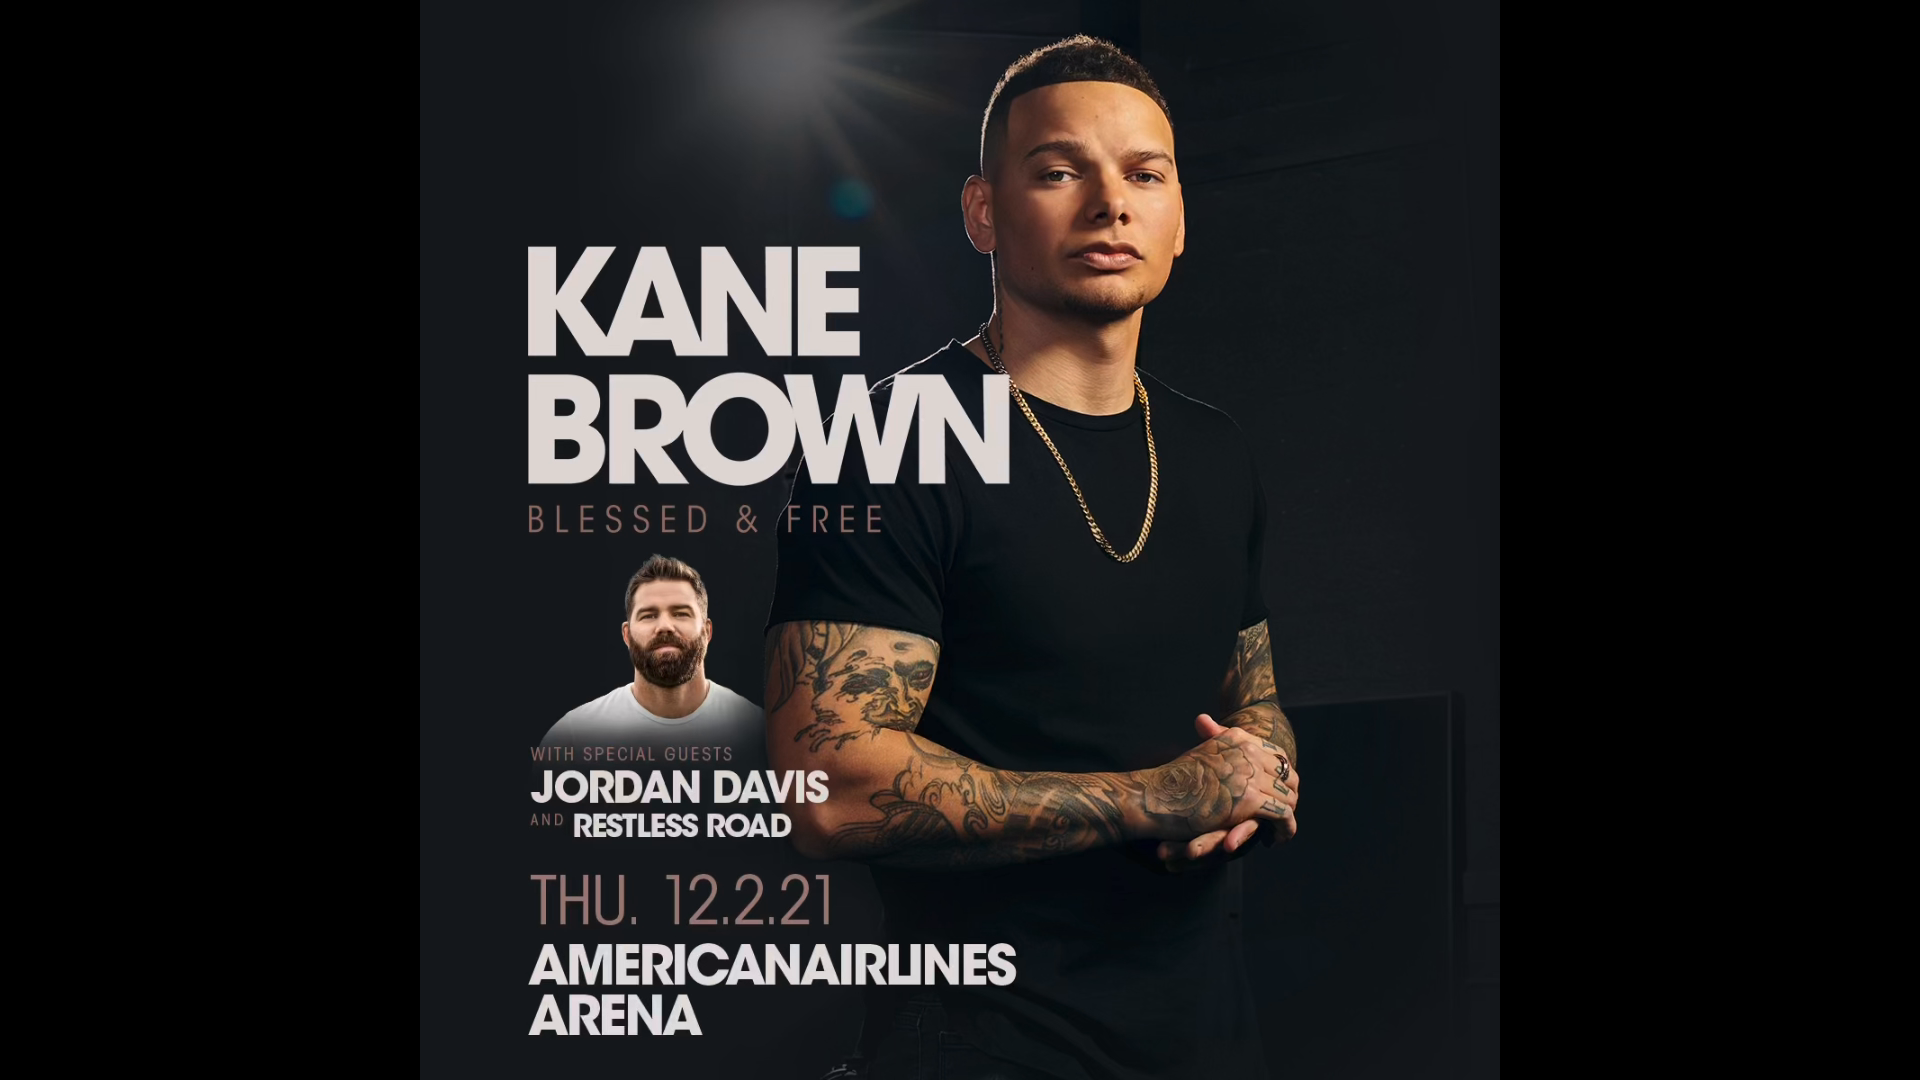 Jimmy Announces Kane Brown